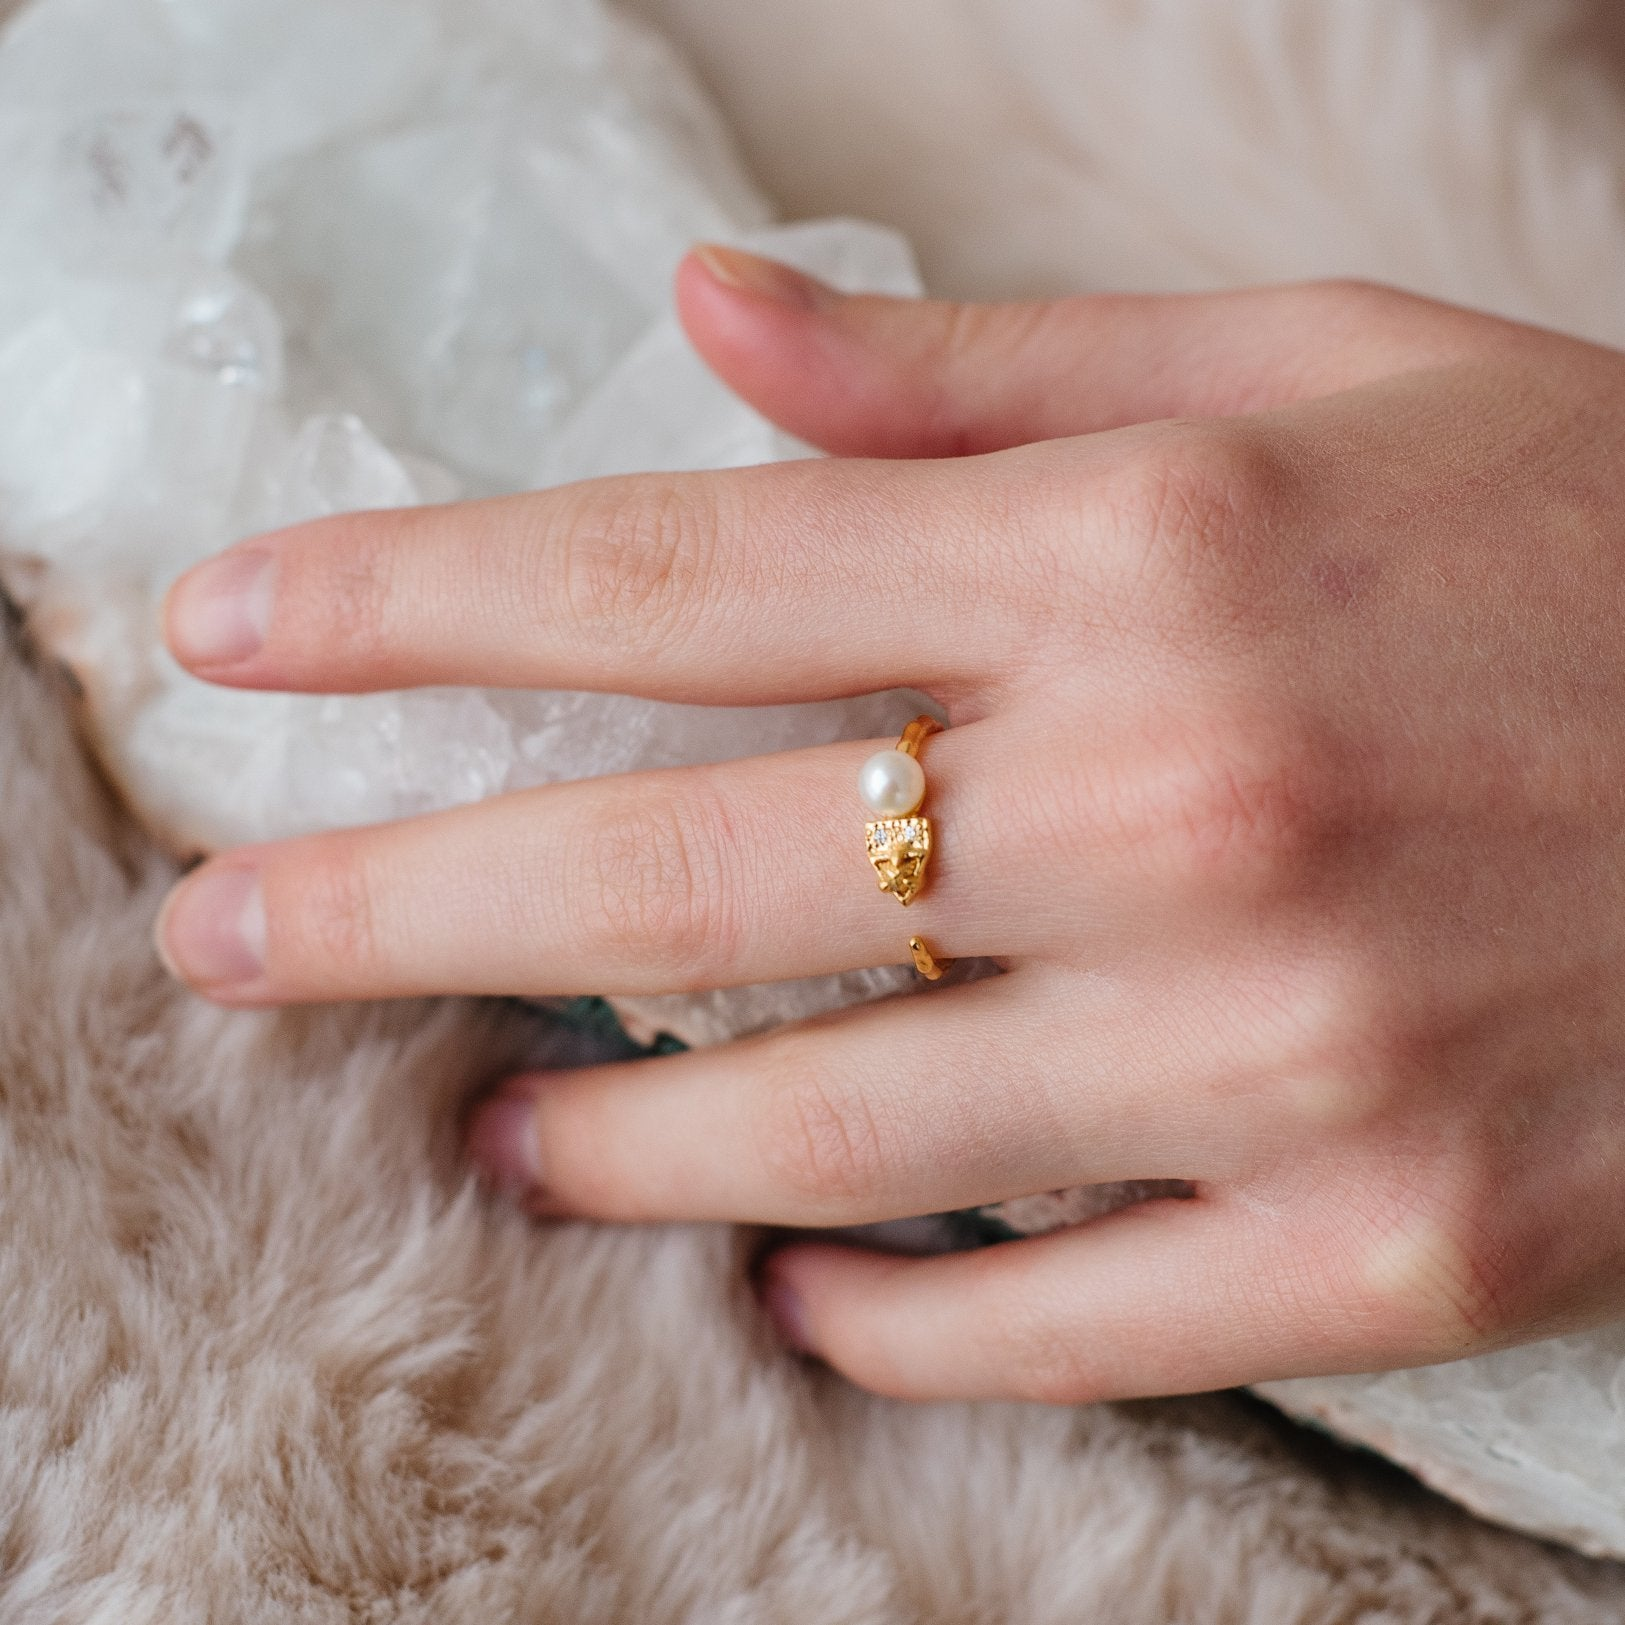 FIERCE ADJUSTABLE RING - FRESHWATER PEARL, CUBIC ZIRCONIA & GOLD - SO PRETTY CARA COTTER